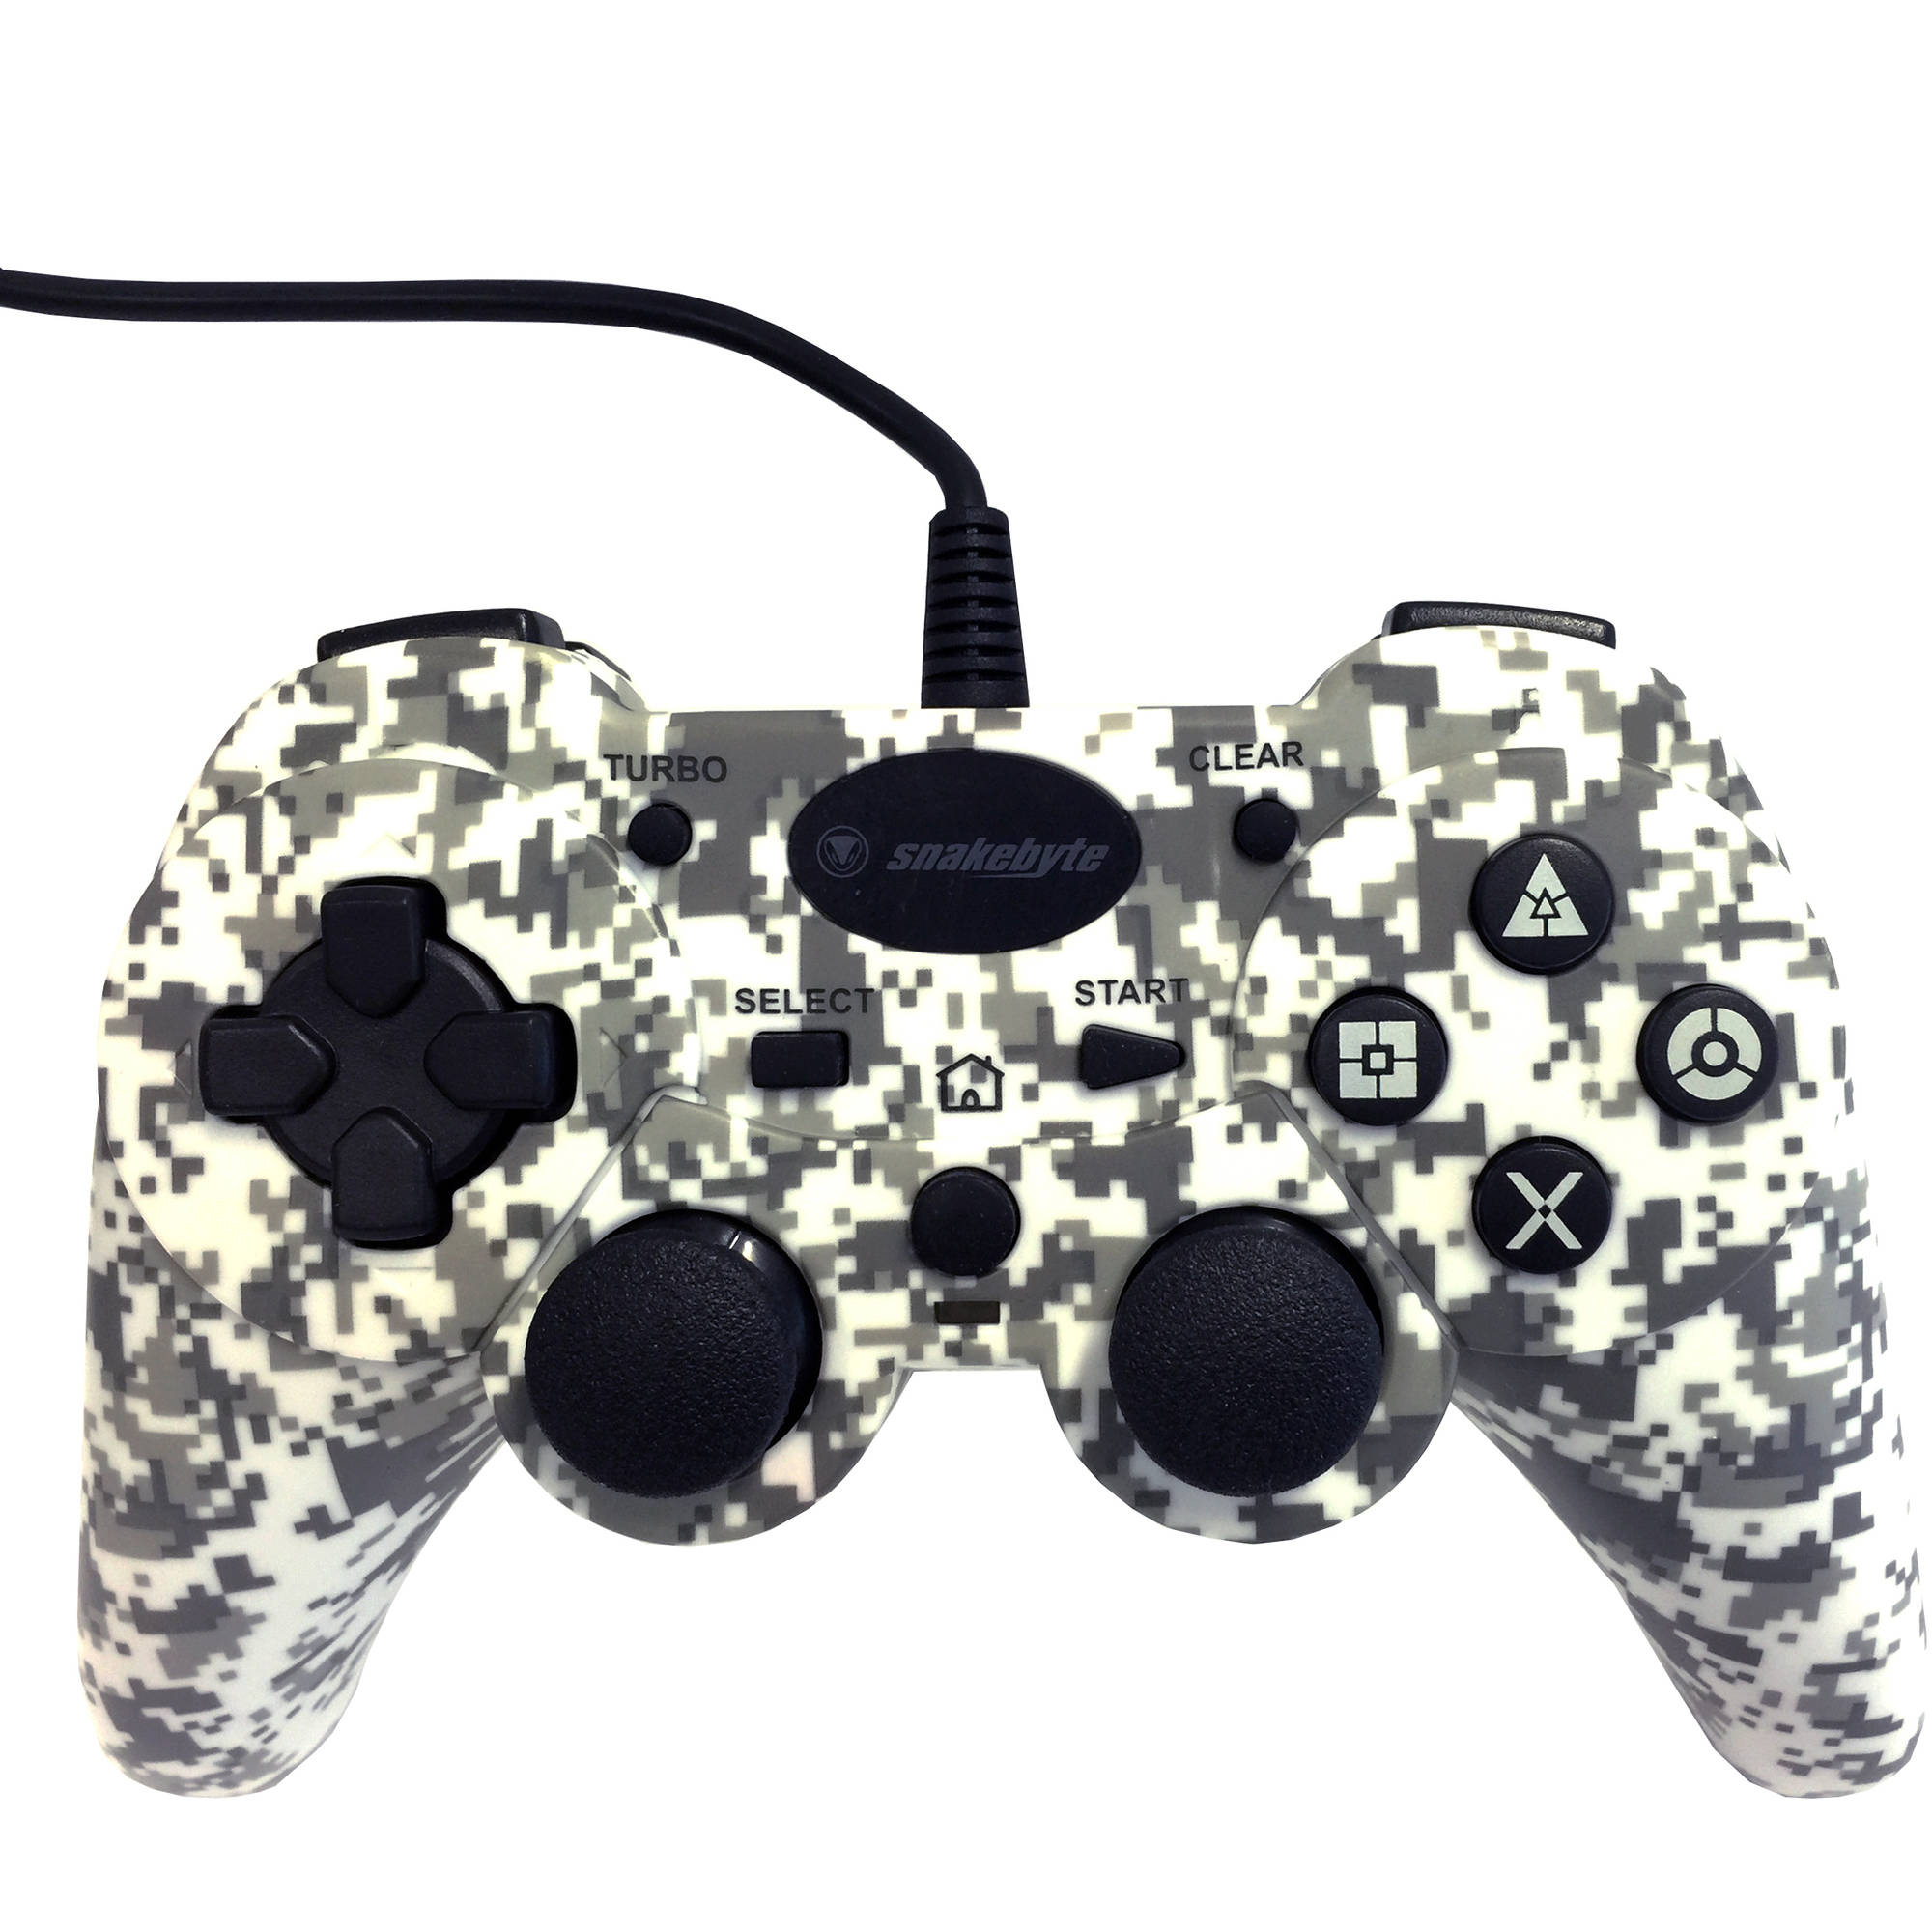 Snakebye PlayStation 3 Wired Controller, Camo